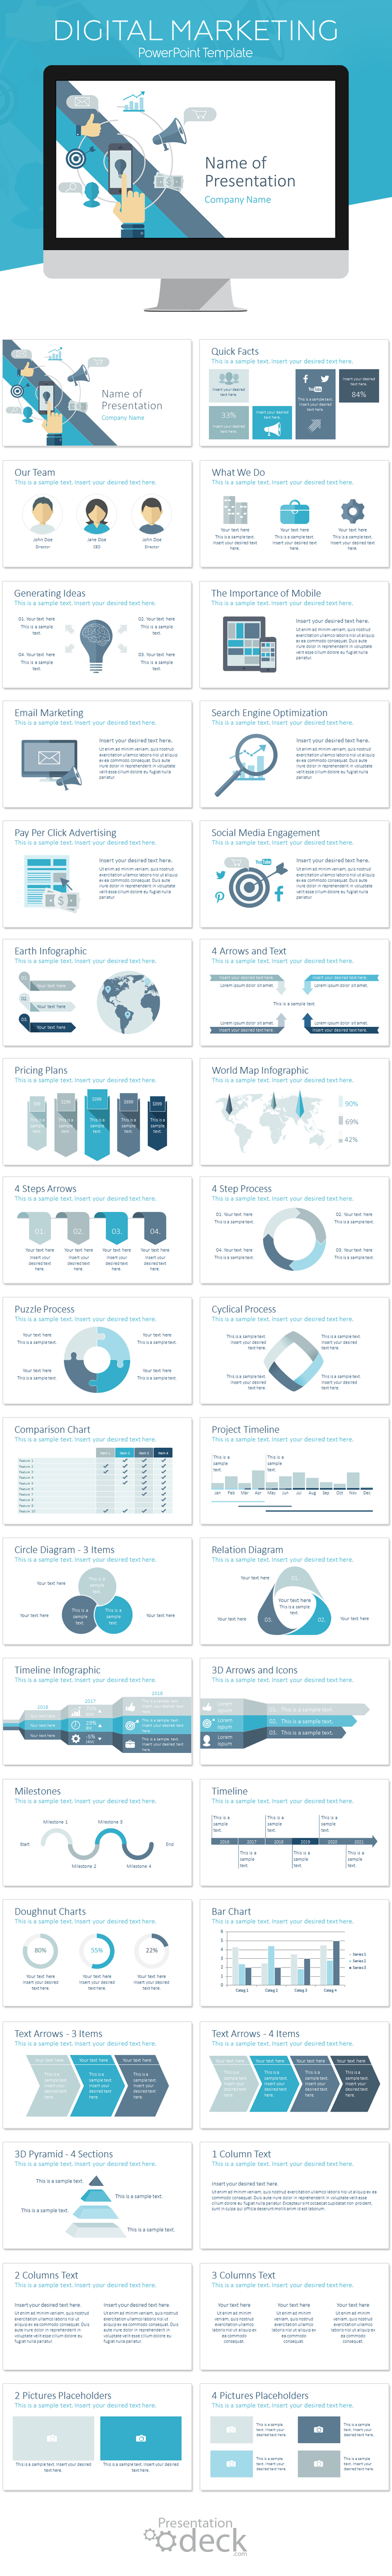 Digital marketing powerpoint template lead generation flat design digital marketing powerpoint template in flat design style including 36 pre designed slides this theme is perfect for digital agencies for presentations toneelgroepblik Images